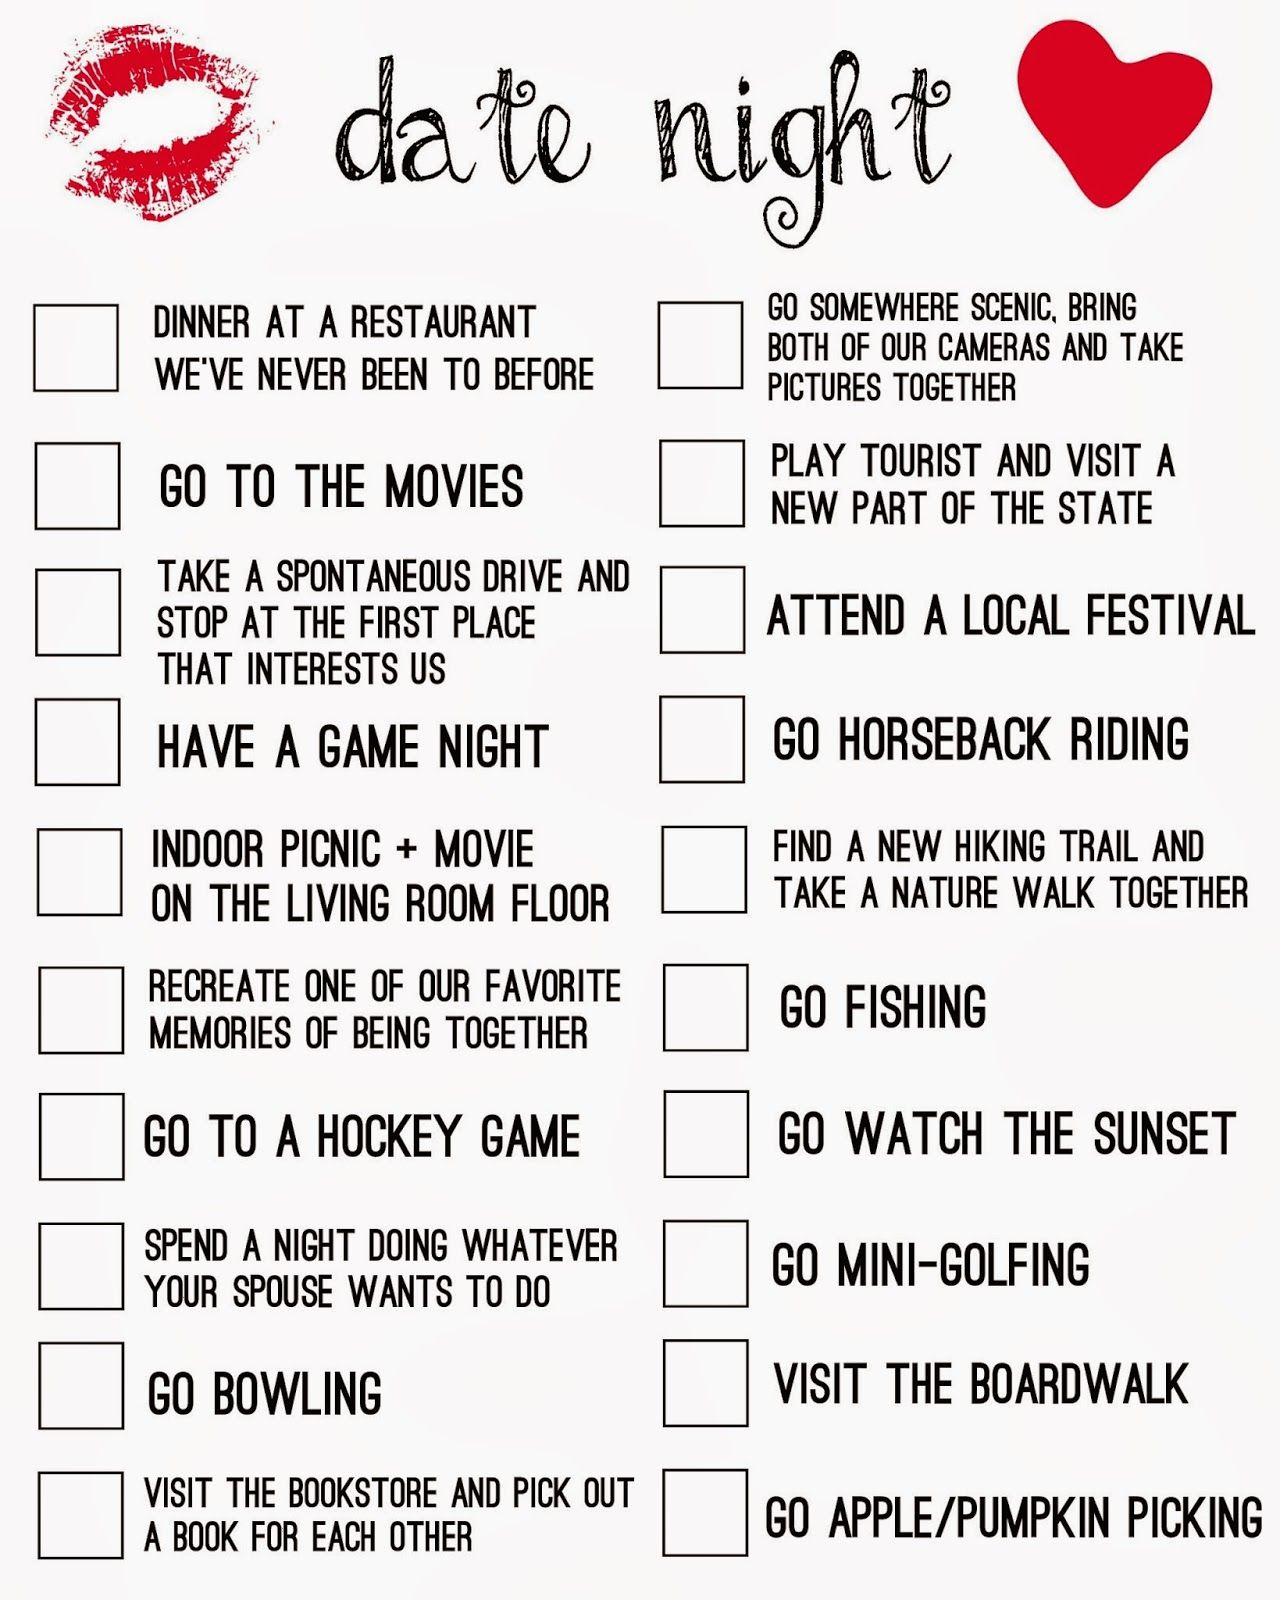 Date Night Ideas Checklist - Free Printable | Living La Vida Holoka within Planning Date Night Checklist Template